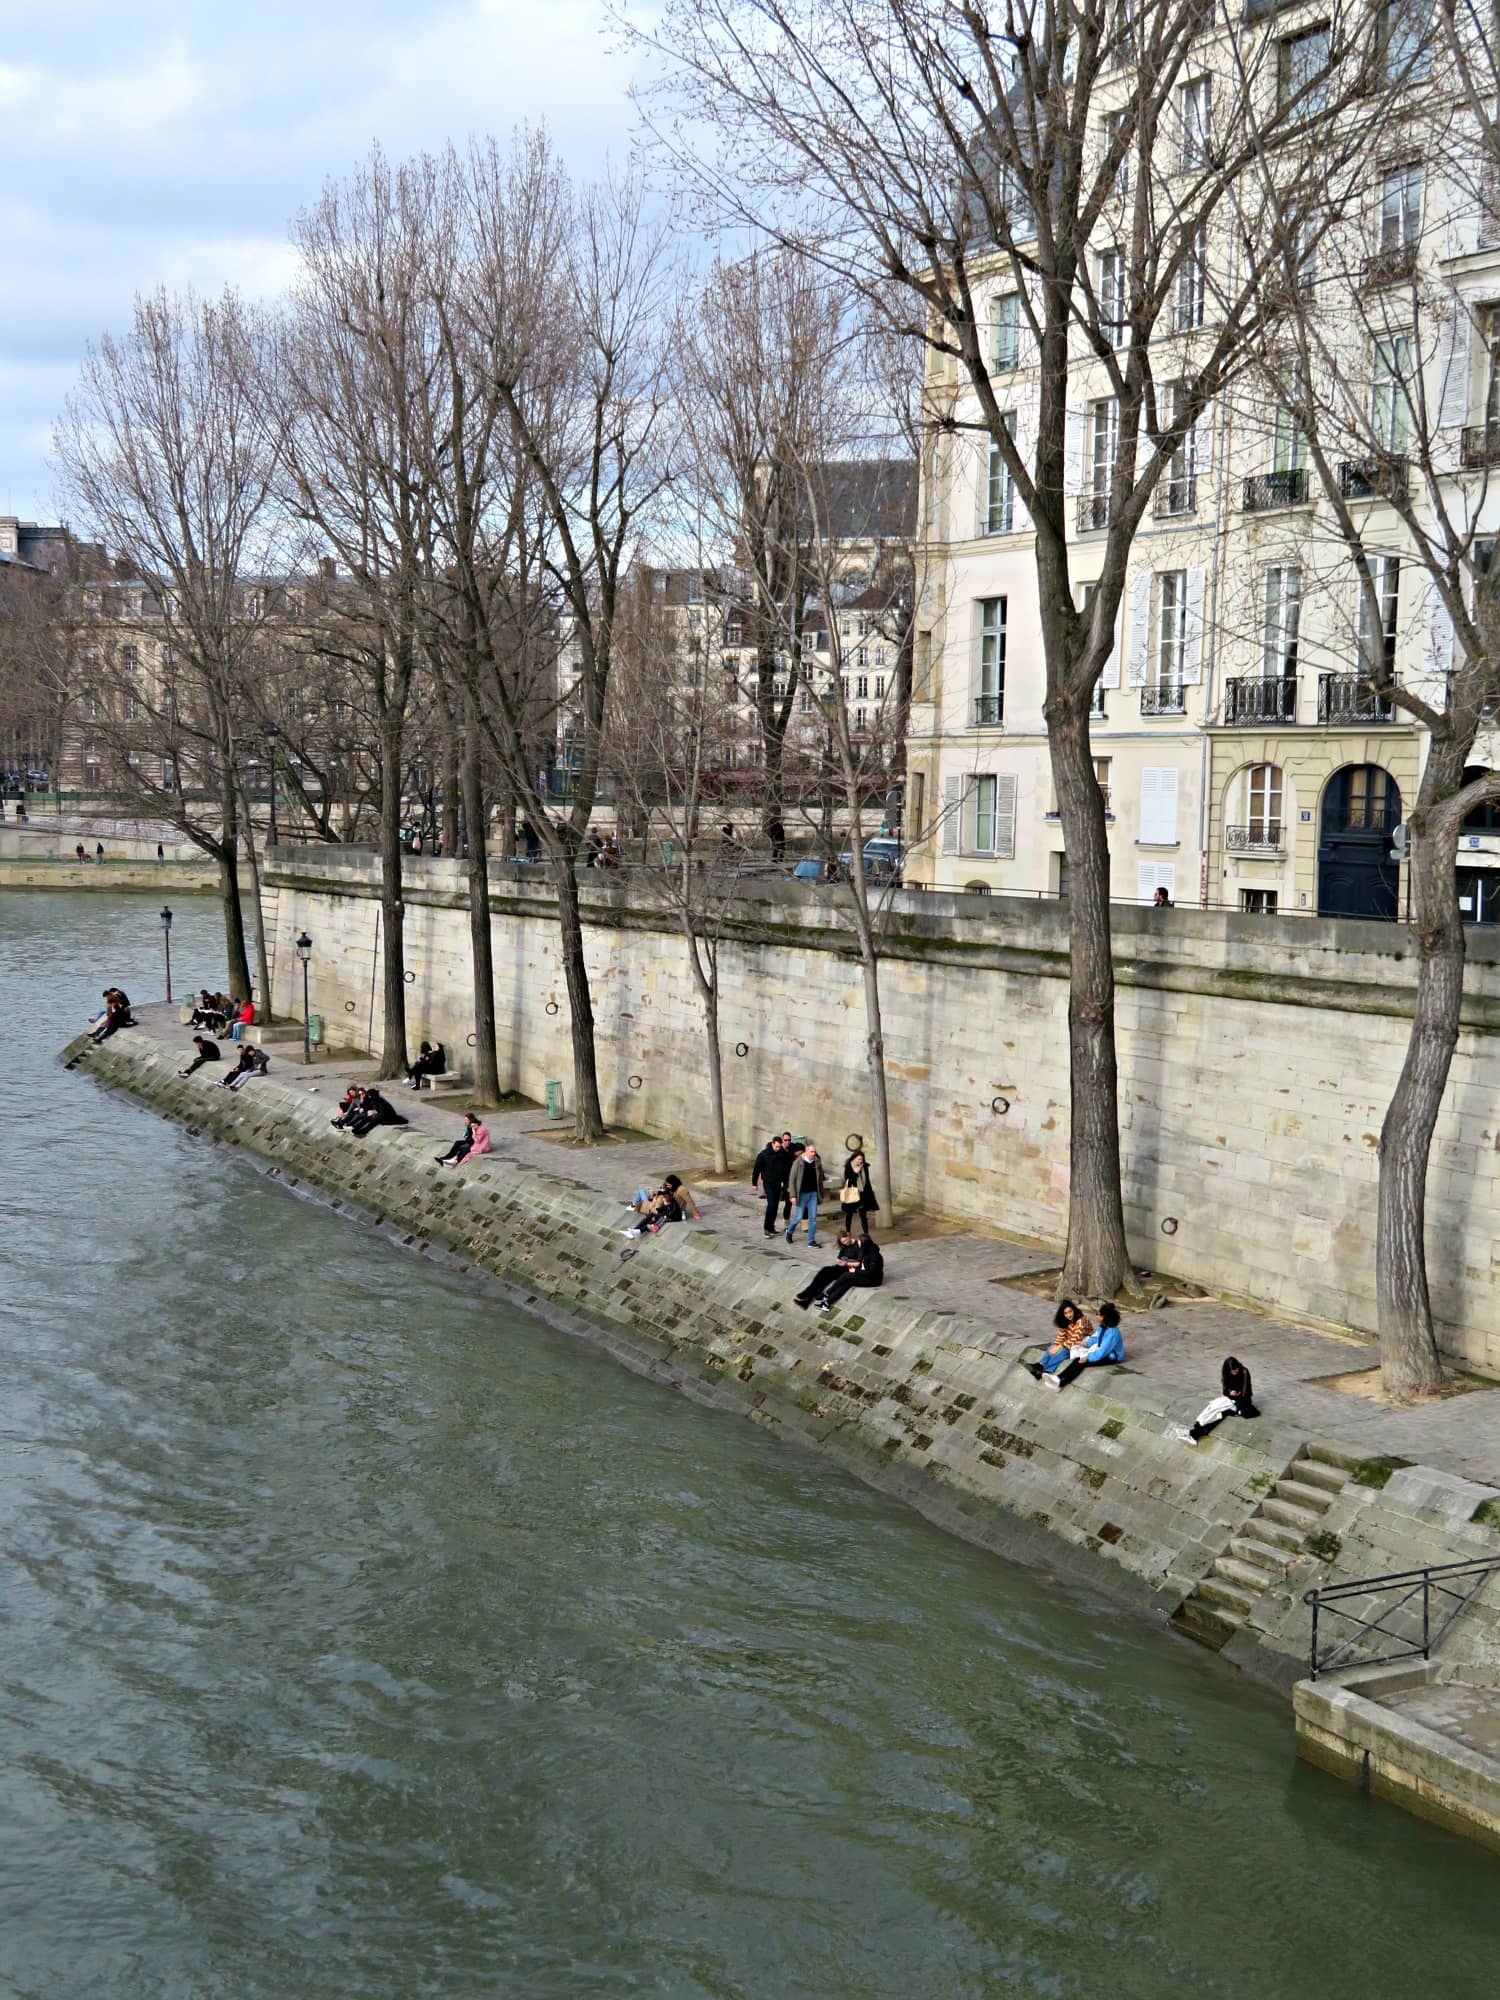 Your tour of Paris with kids may include a ride on the Seine River